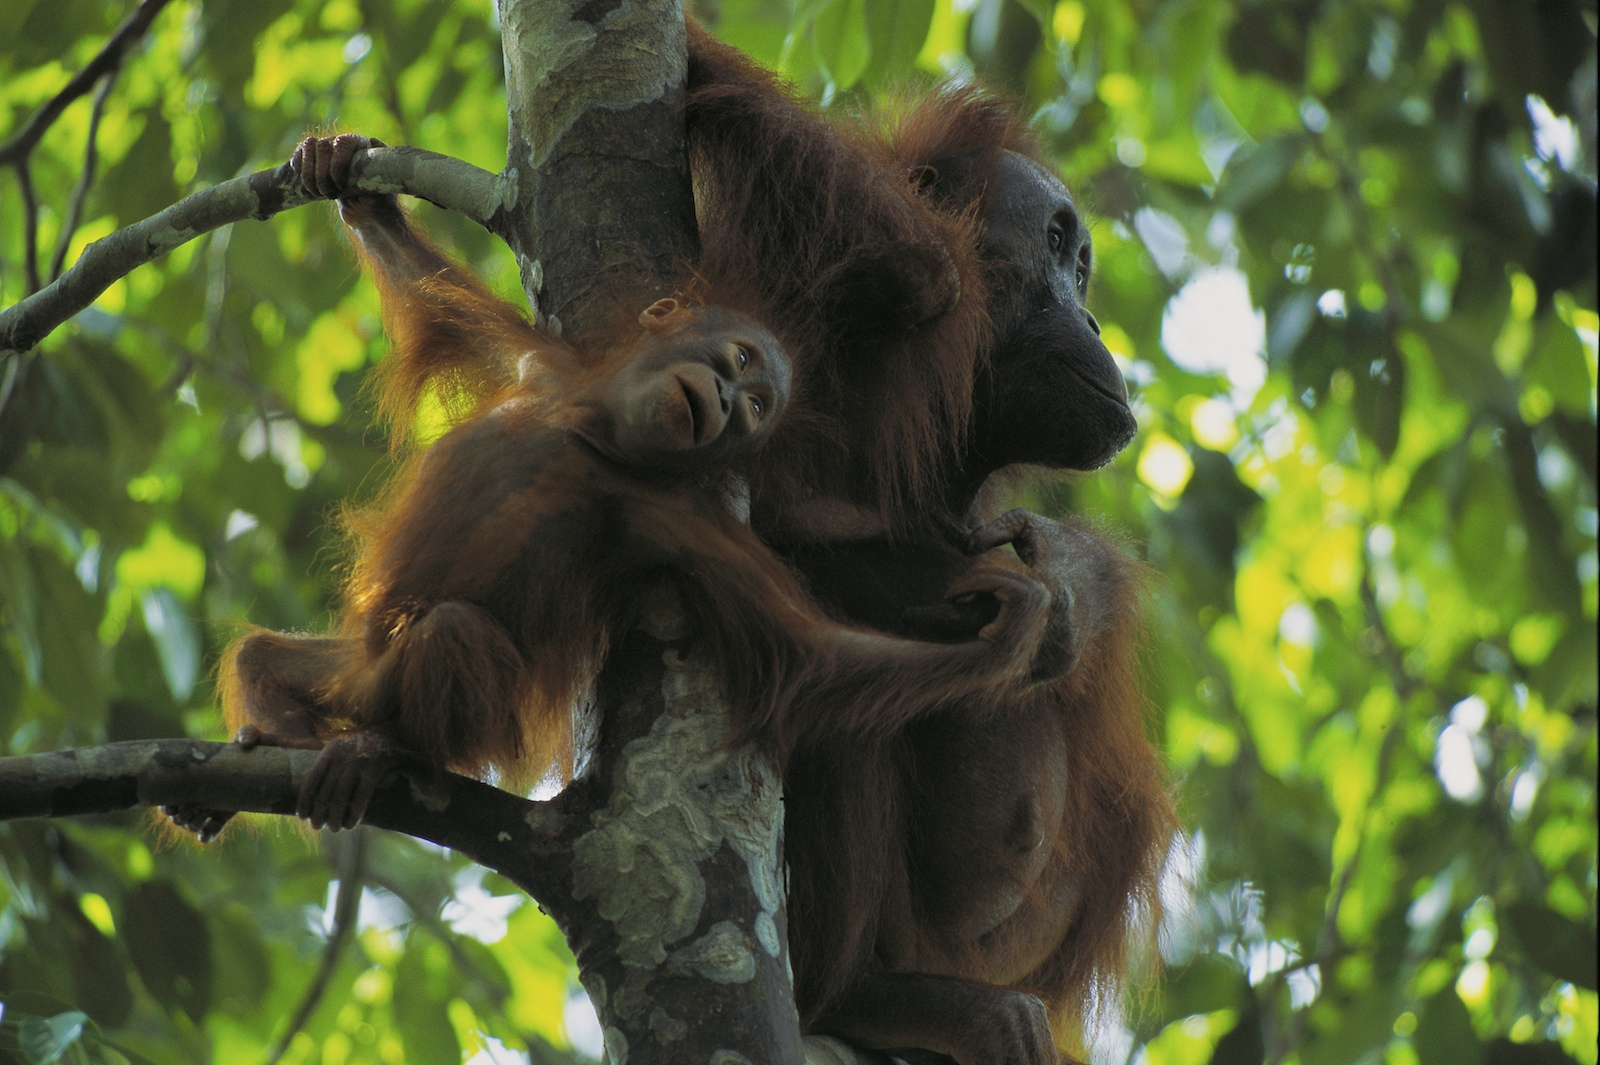 photo by Tim Laman from the Orangutan Conservancy archives